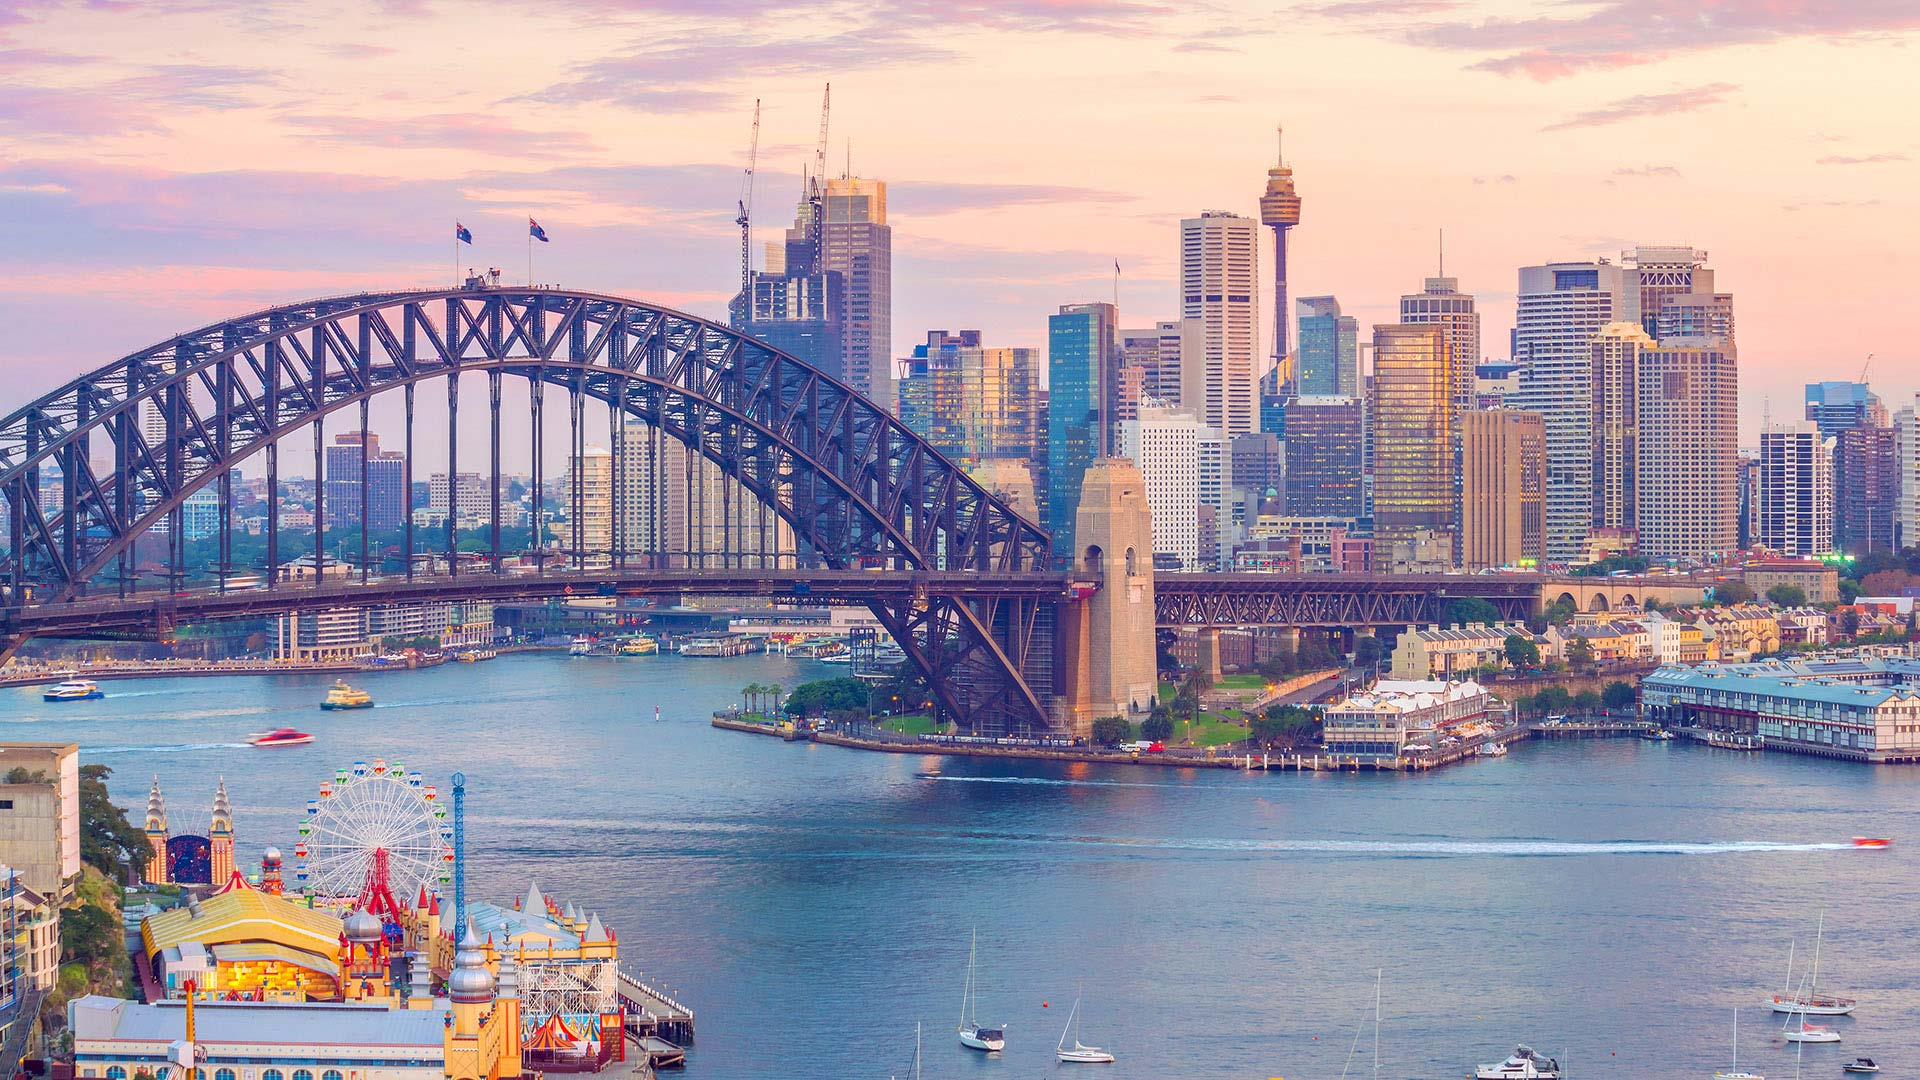 Panorama to illustrate dating in sydney